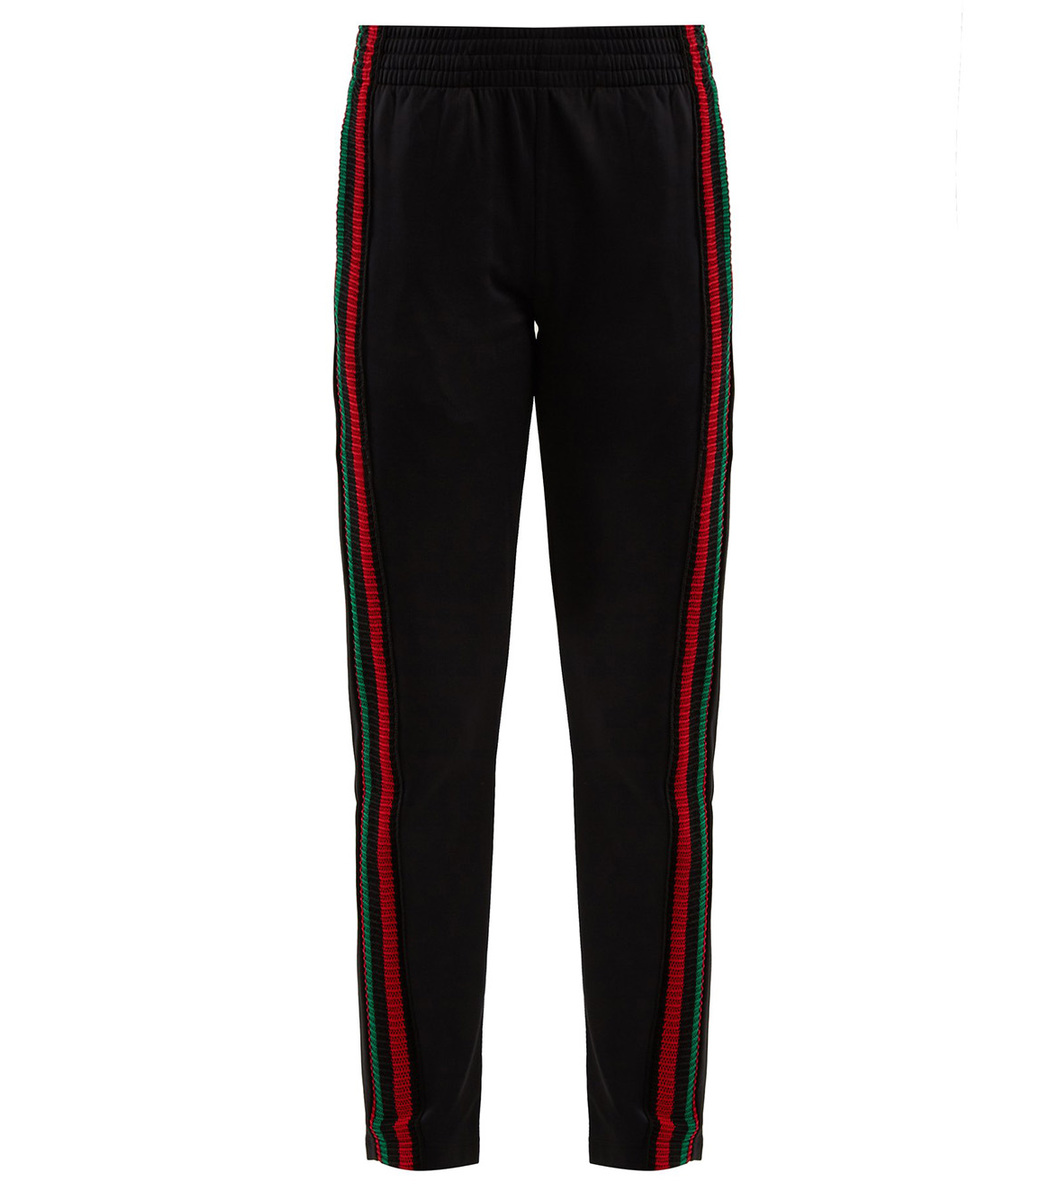 Wales Bonner Striped Crochet-Detailed Track Pants